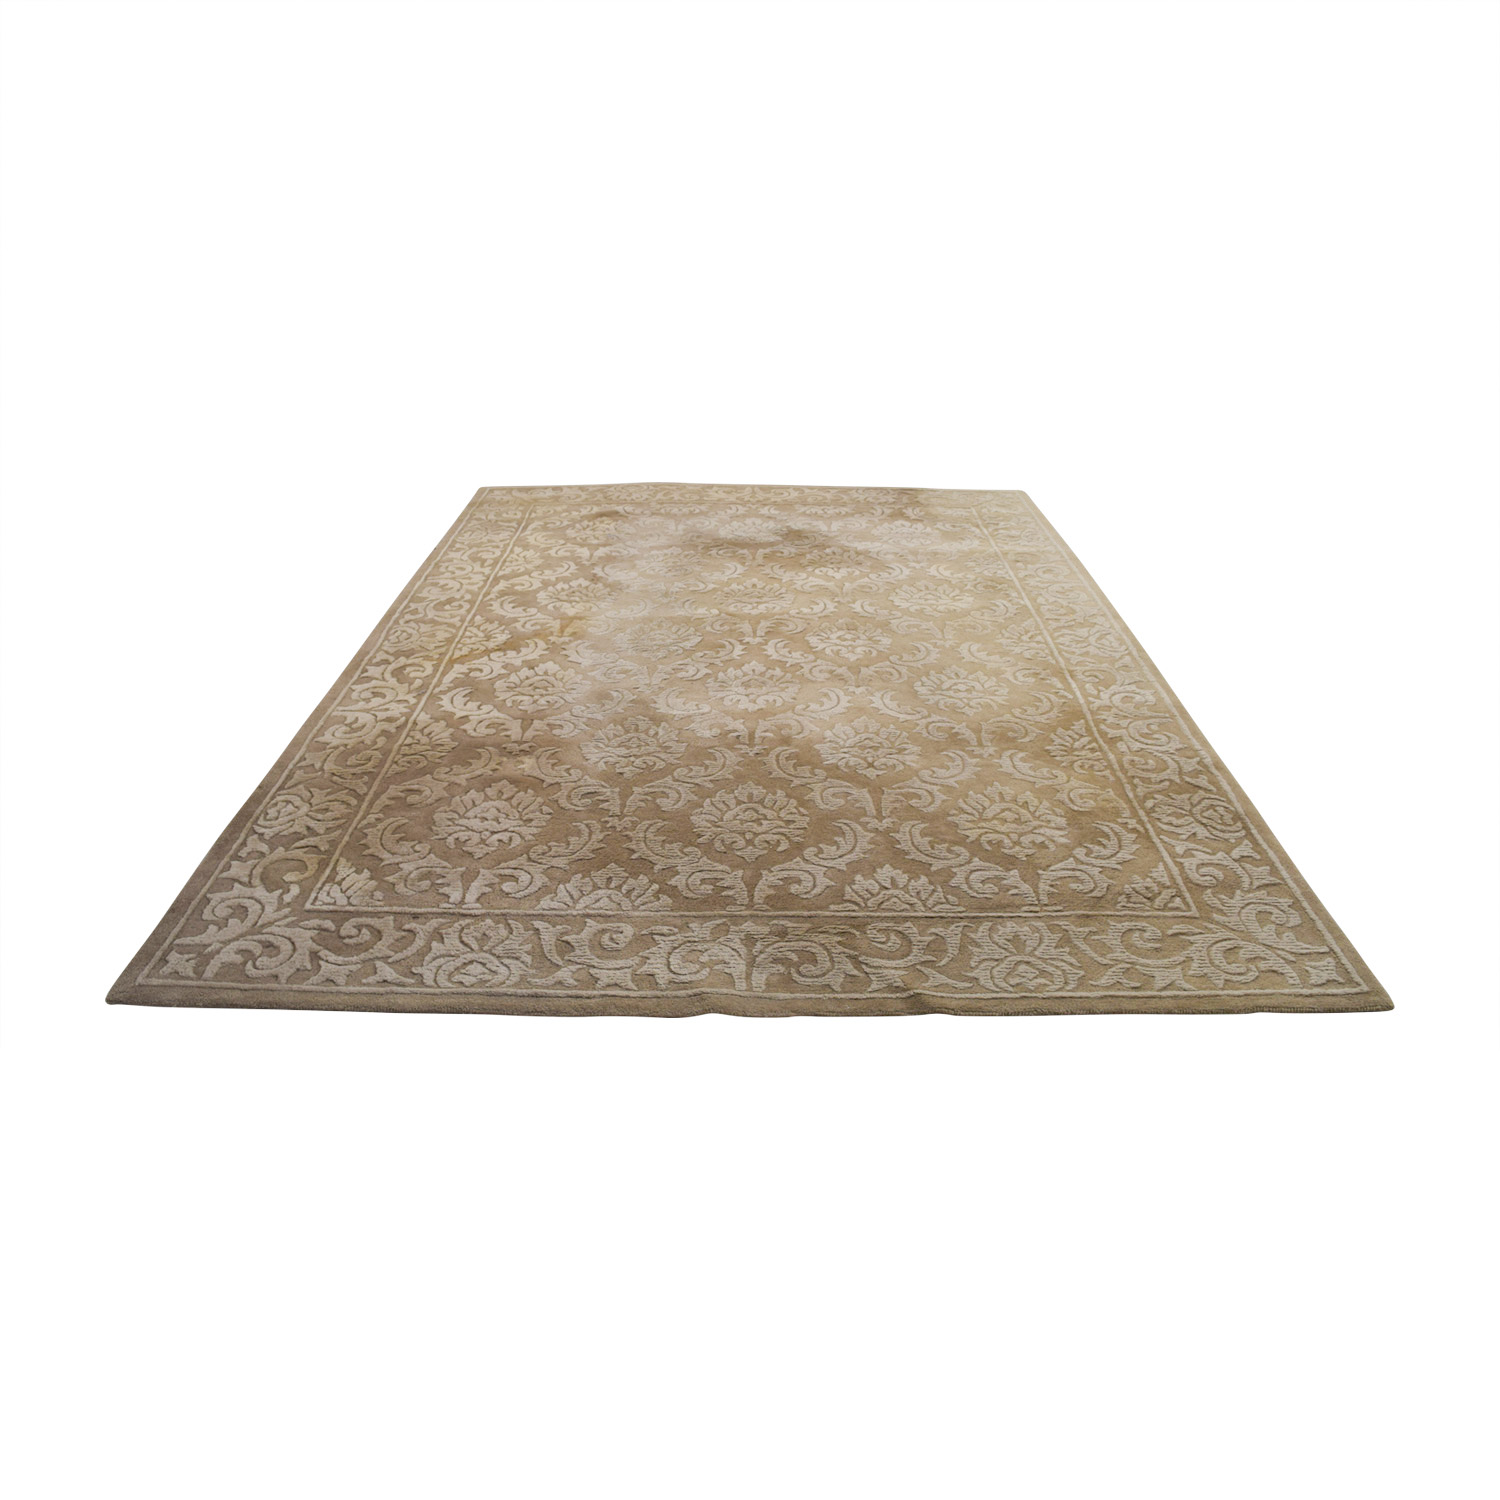 Large Tan Rug price